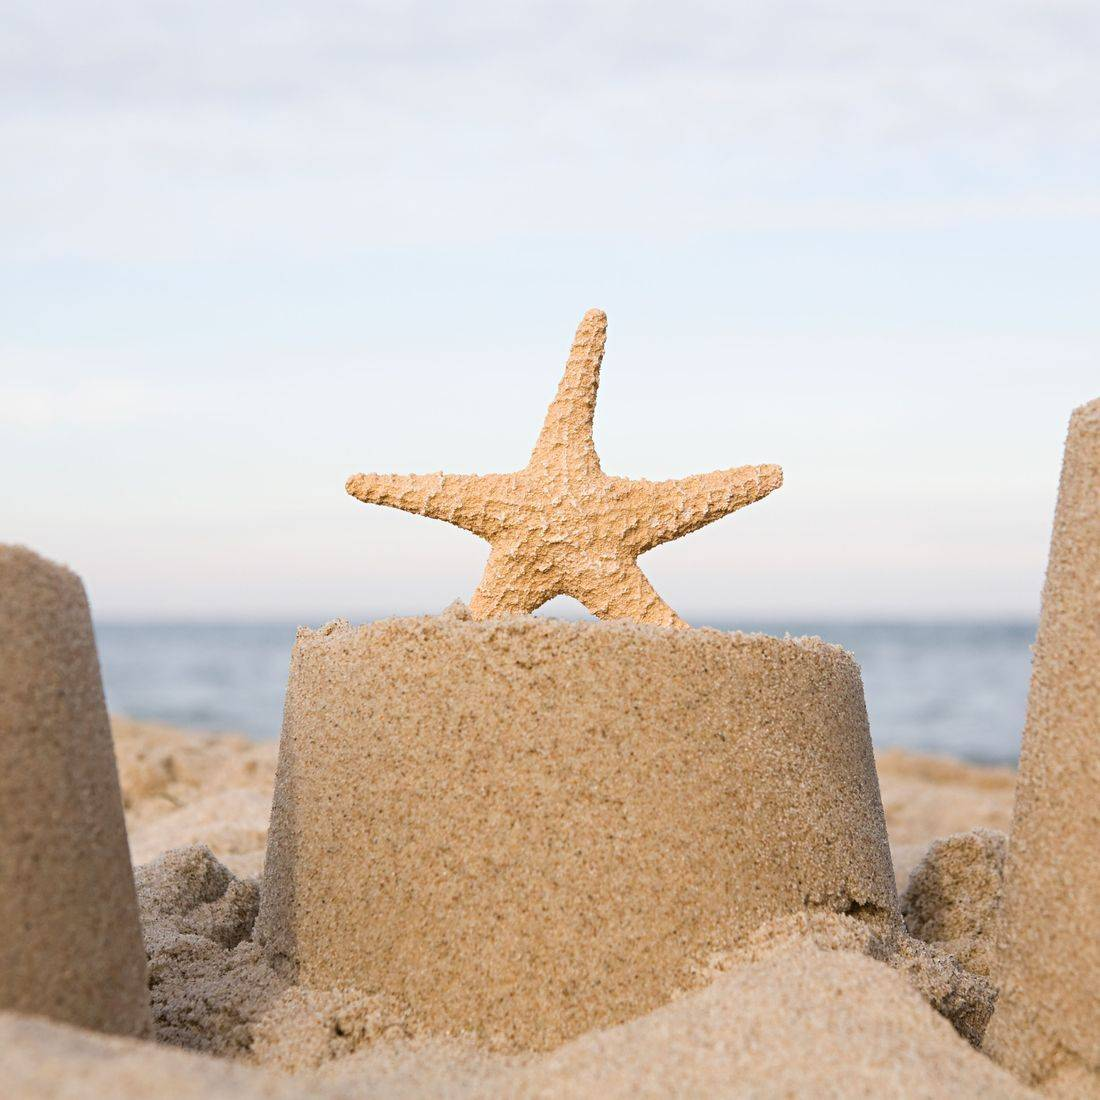 sandcastle with a sand star on a beach